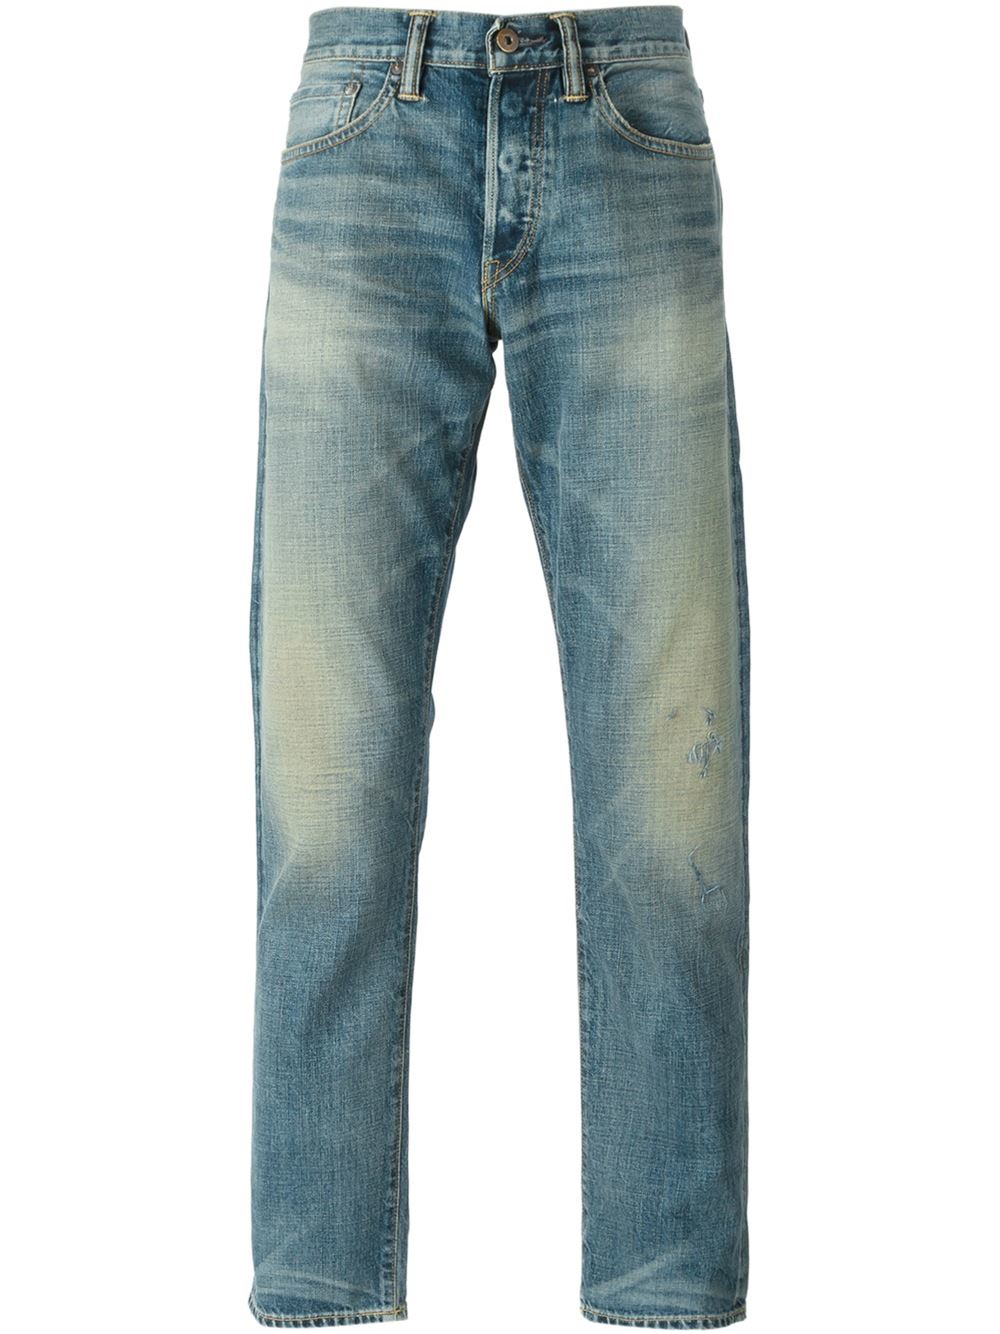 simon miller distressed stone washed jeans in blue for men save 30 lyst. Black Bedroom Furniture Sets. Home Design Ideas